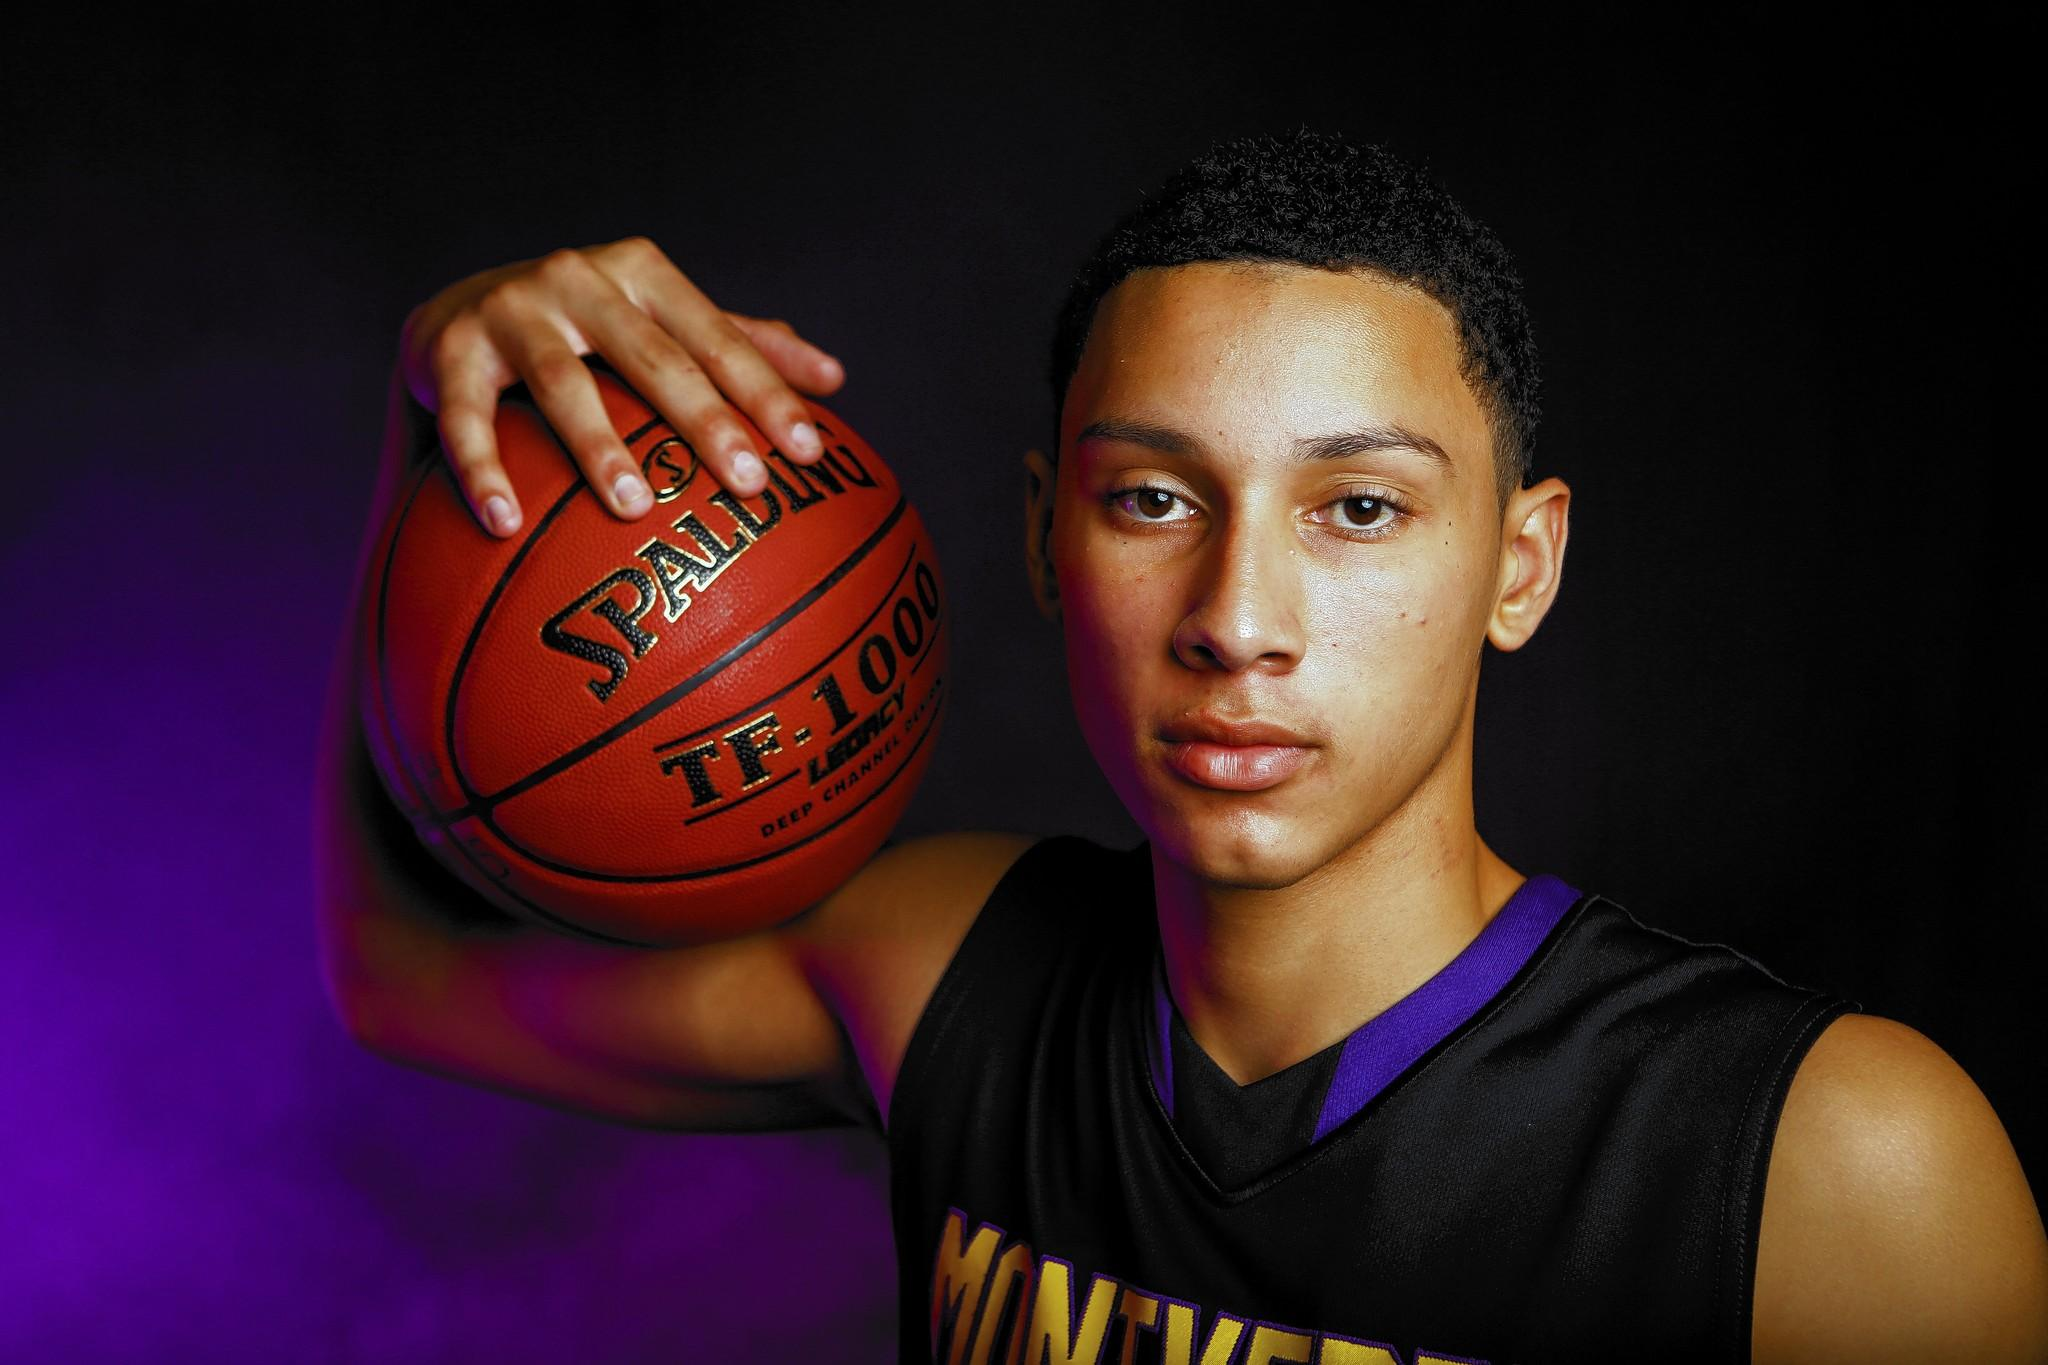 Ben Simmons: Ben Simmons: The Beast Of The Bayou And Future Sixer